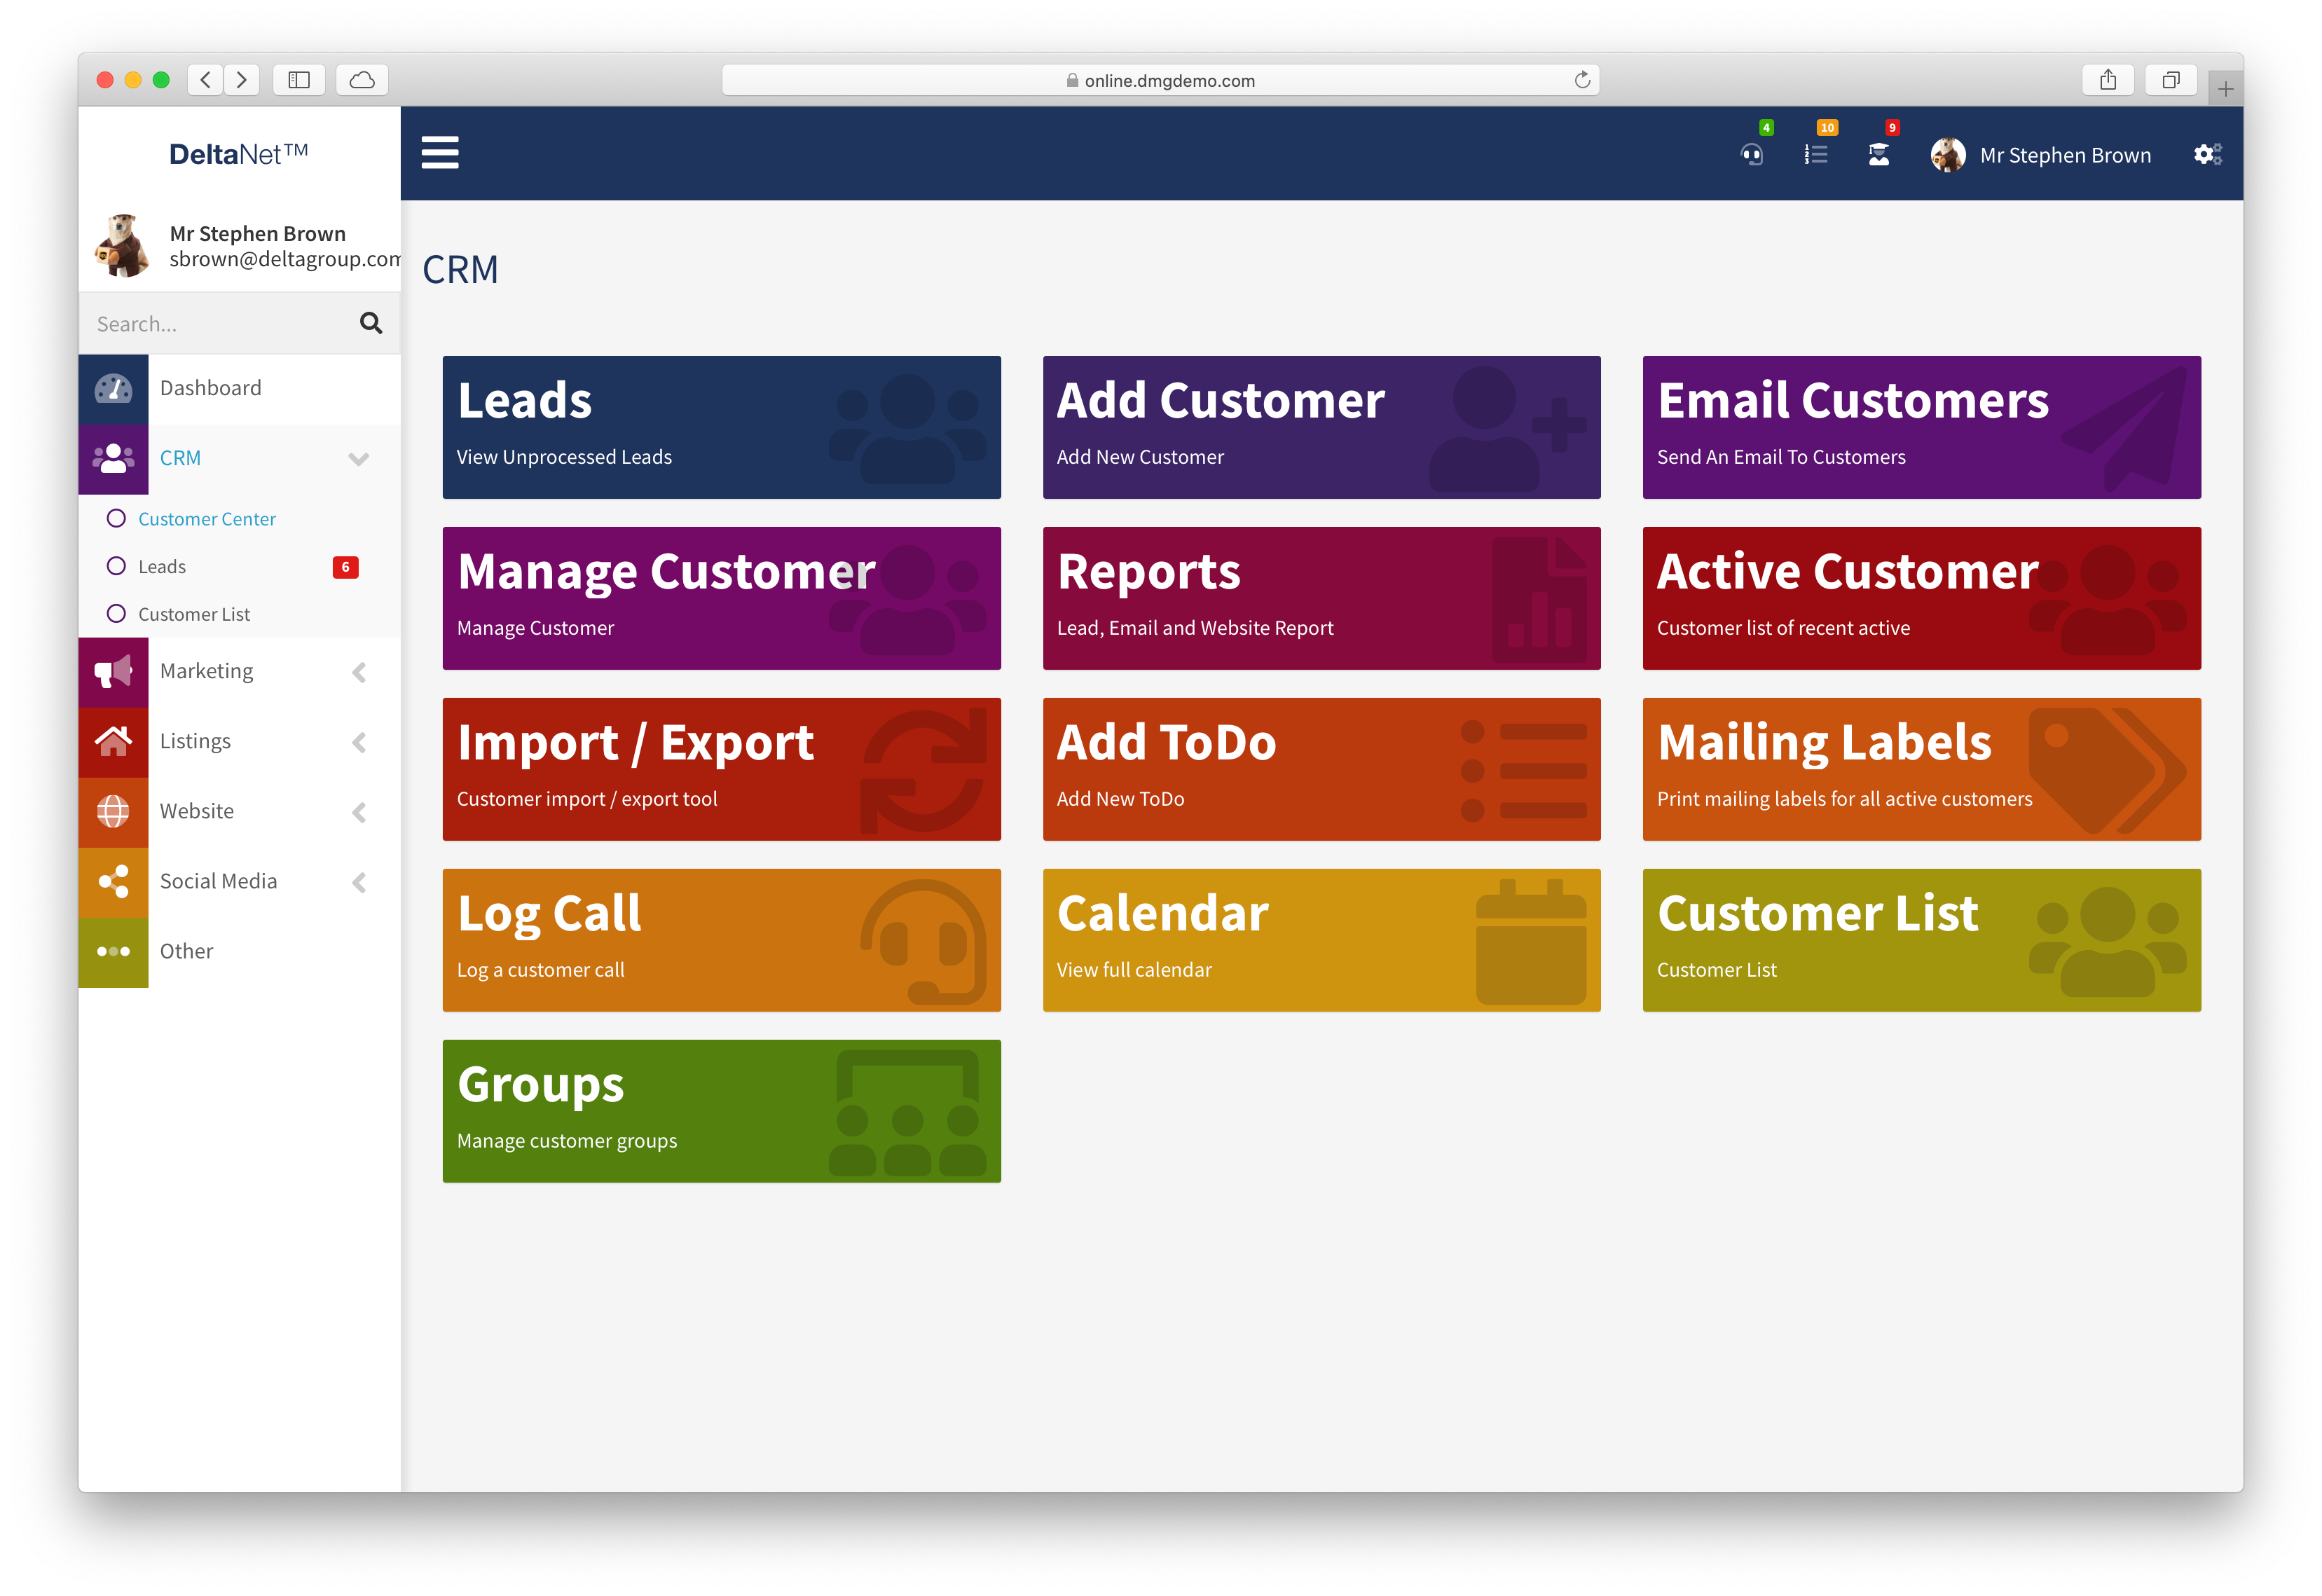 Real Estate Agents, Teams Get Access to Delta Media's Best CRM Platform for the First Time